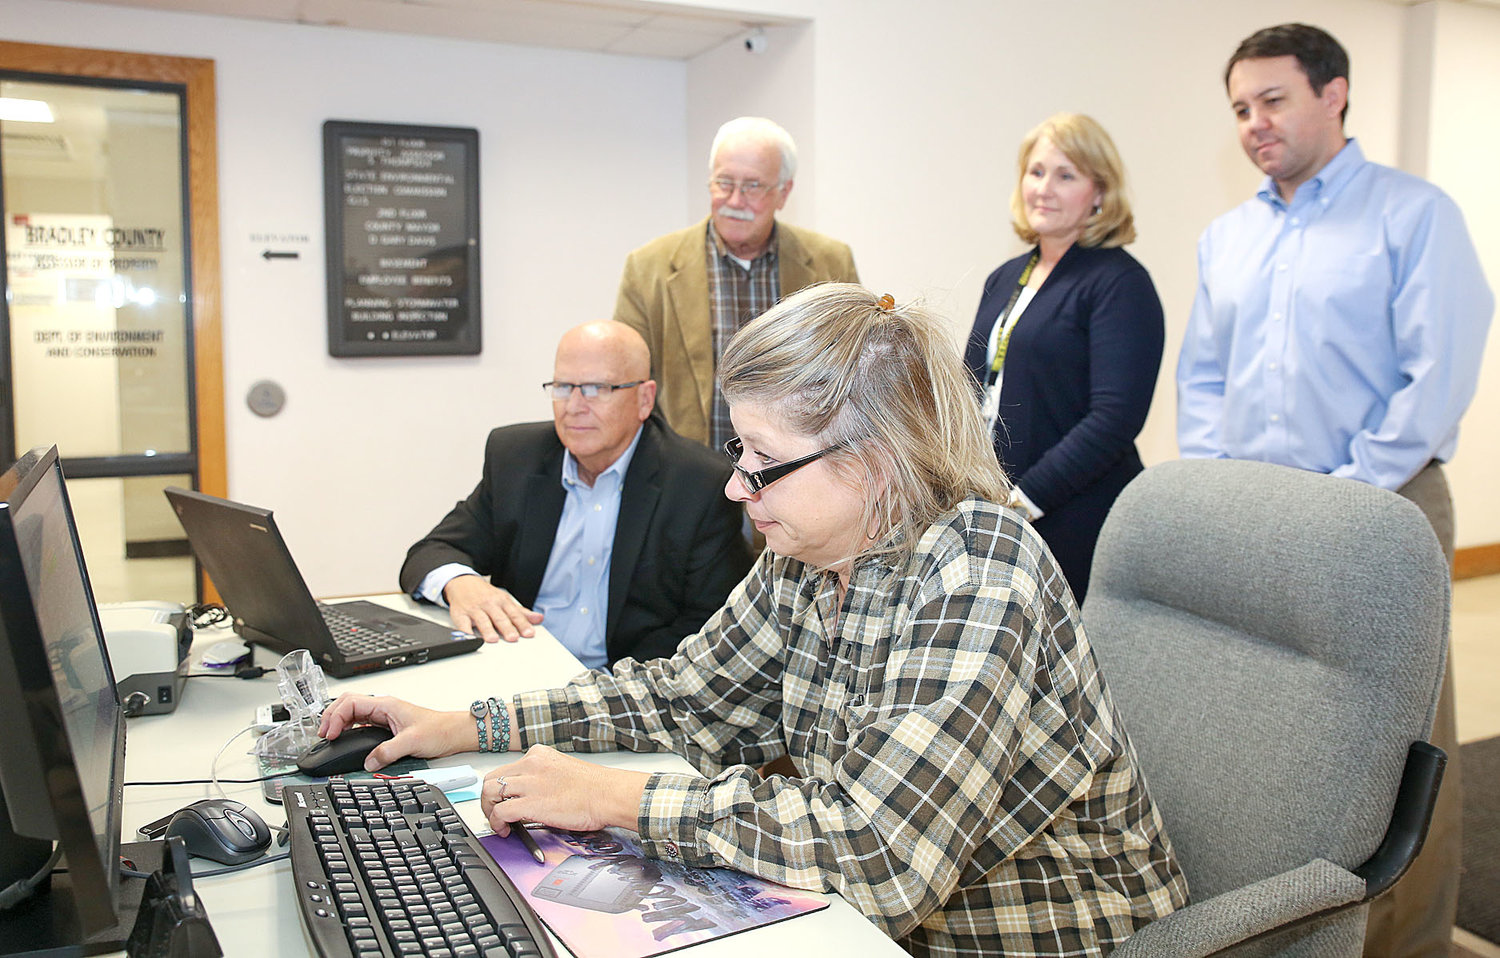 BRADLEY COUNTY ADMINISTRATOR of Elections Fran Green, center, watches her computer closely as the voting precincts close and tabulation results begin to roll in on election night at the Bradley County Election Commission. Seated from left are Joe Reed, CPA and consultant to the Bradley County Election Commission and Green. Standing, from left, are Commissioners Dana Burgner, Cristy Schuch and Travis Henry.